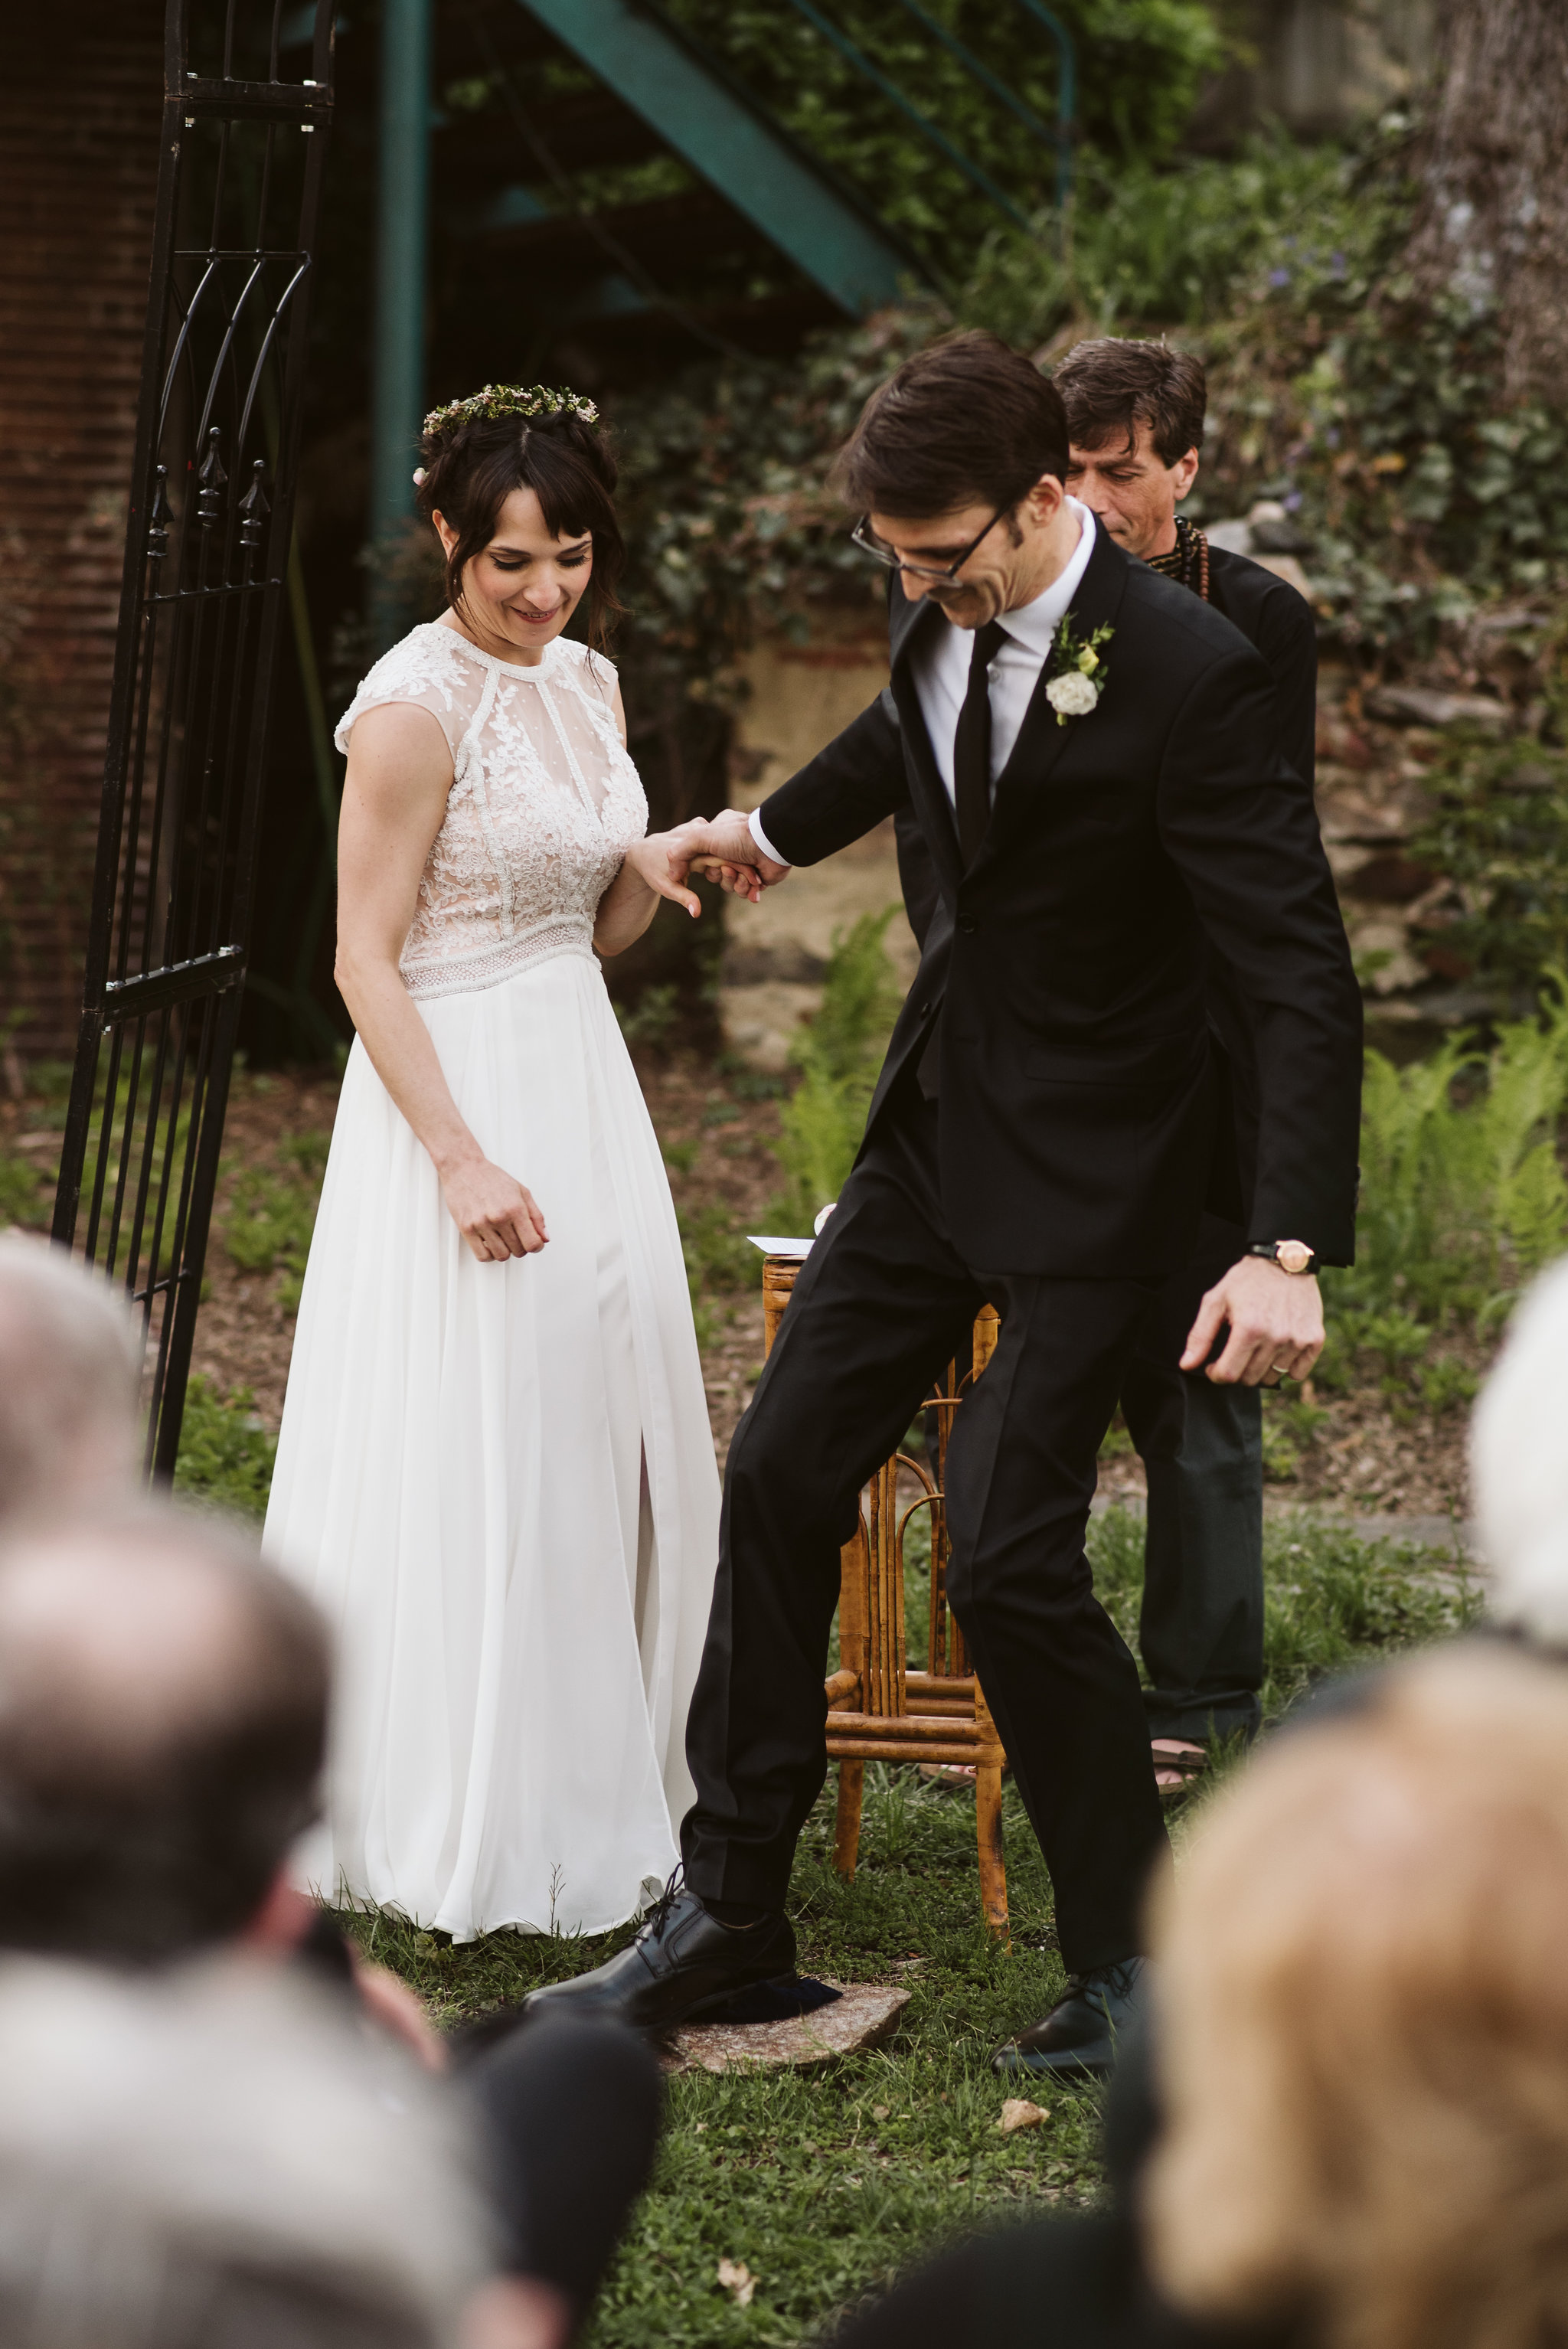 AllisonandDan'sWedding-329.jpg